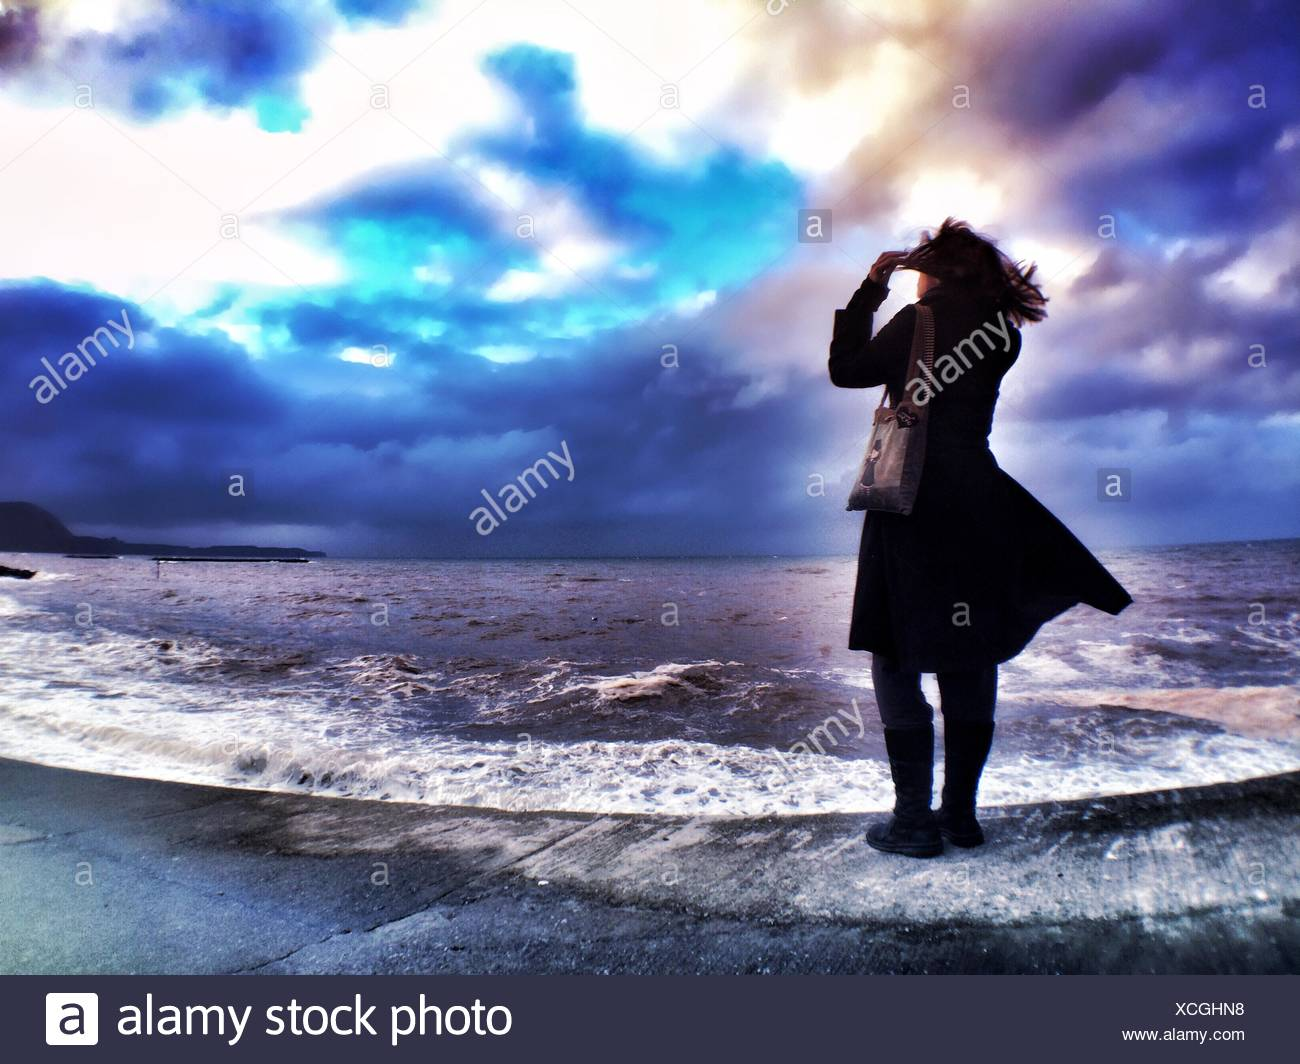 Rear View Of Woman Standing At Shore Against Cloudy Sky - Stock Image